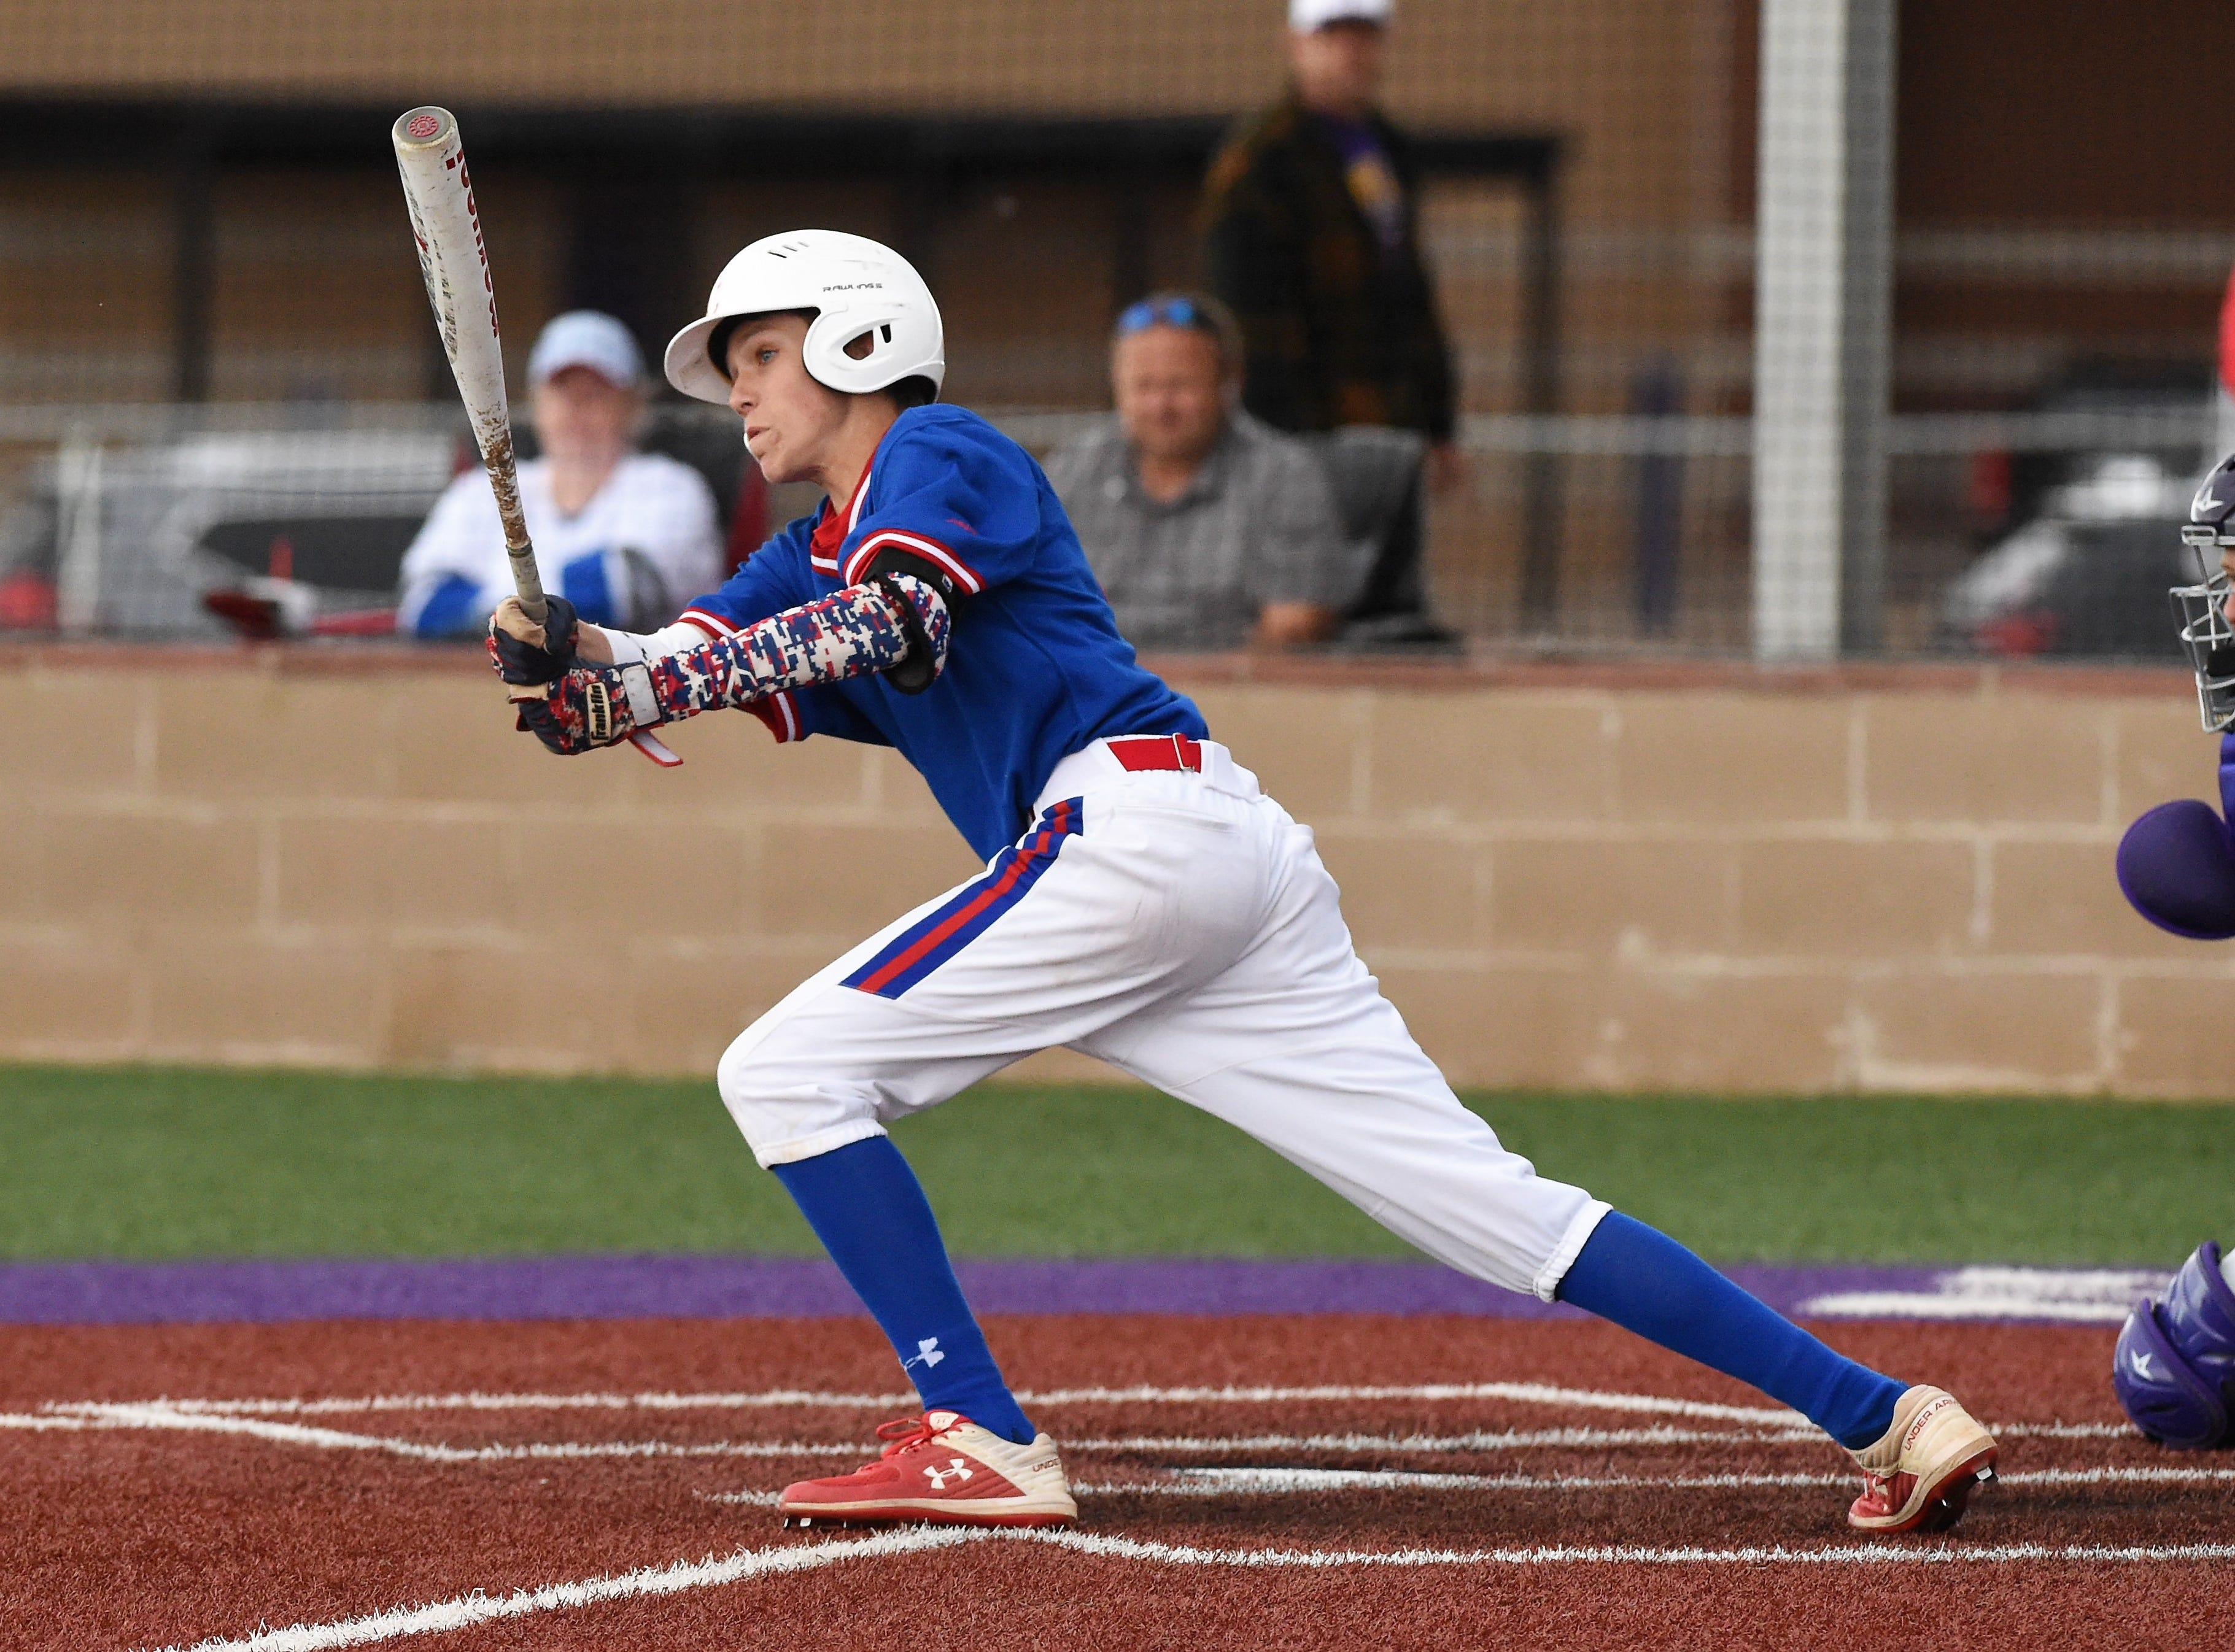 Cooper's Jack Keefer (2) follows through on a swing against Wylie at Bulldog Field on Friday, April 12, 2019. The Cougars fell 4-3.